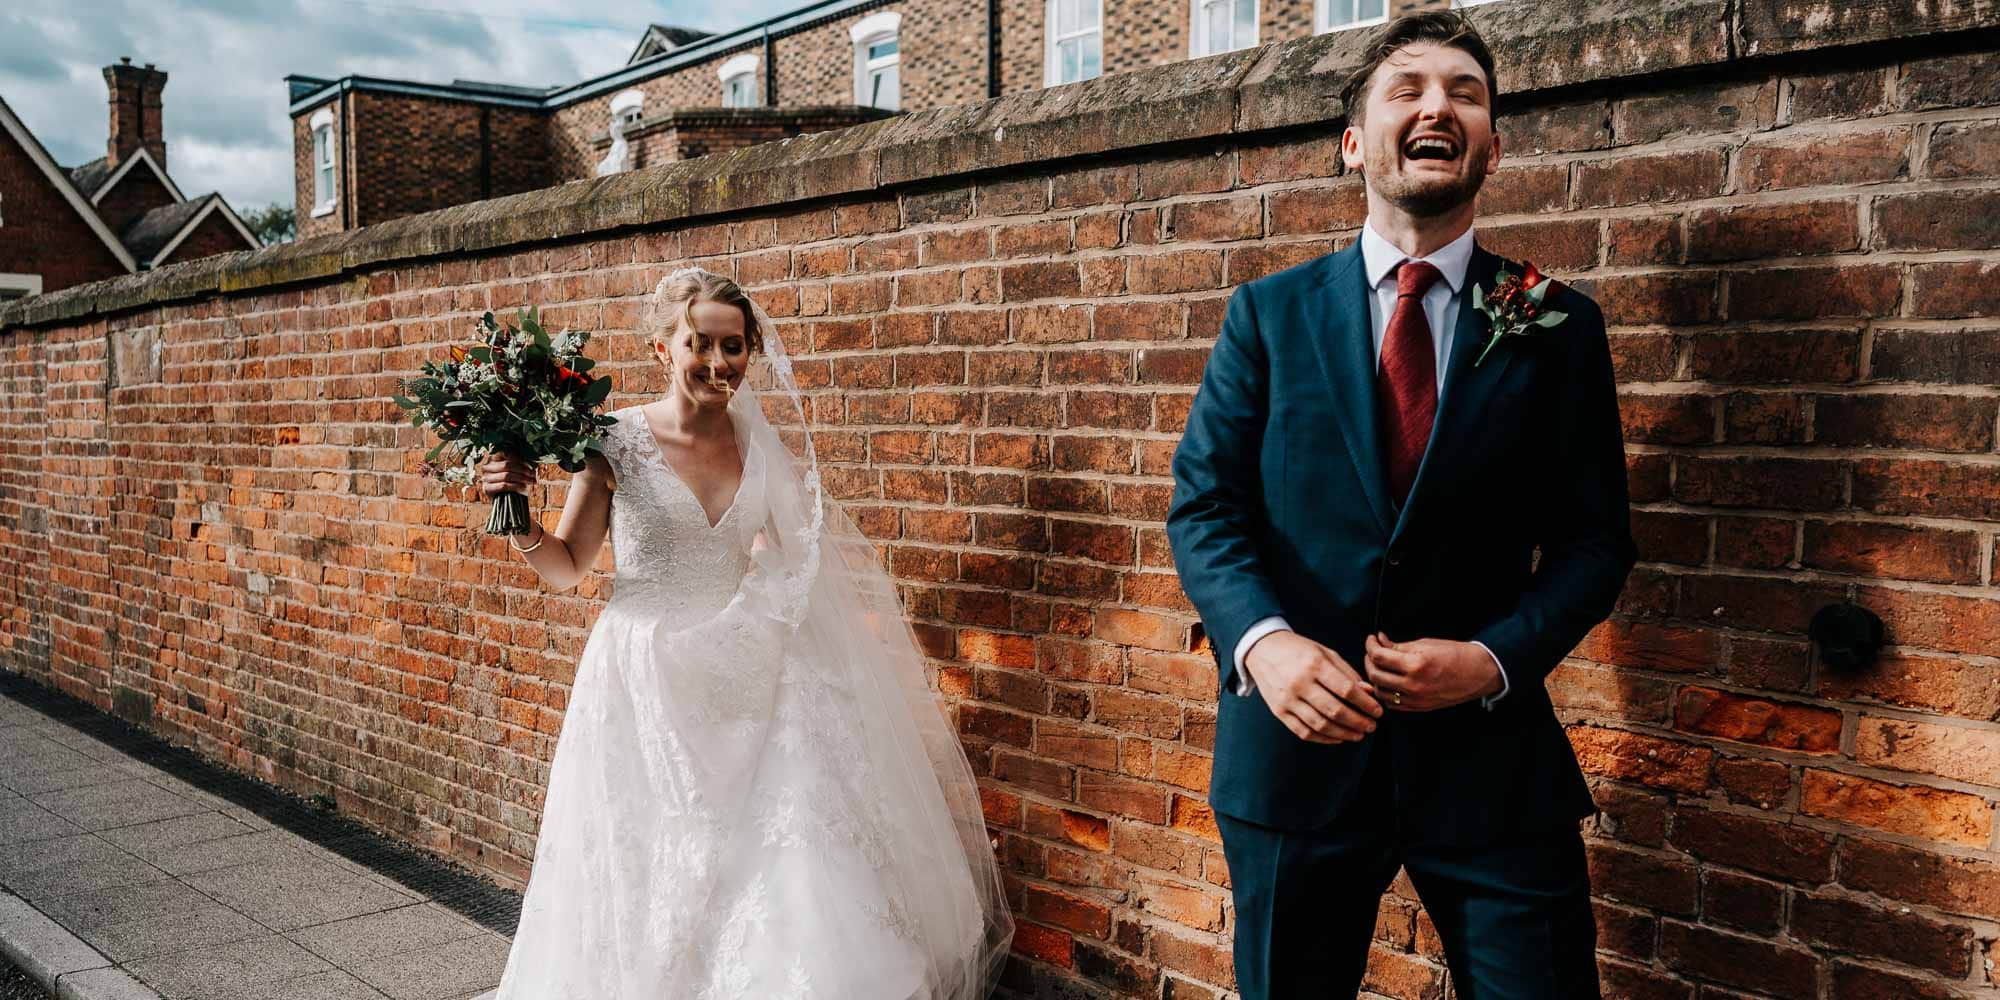 Bride and groom walking along village street laughing at each other